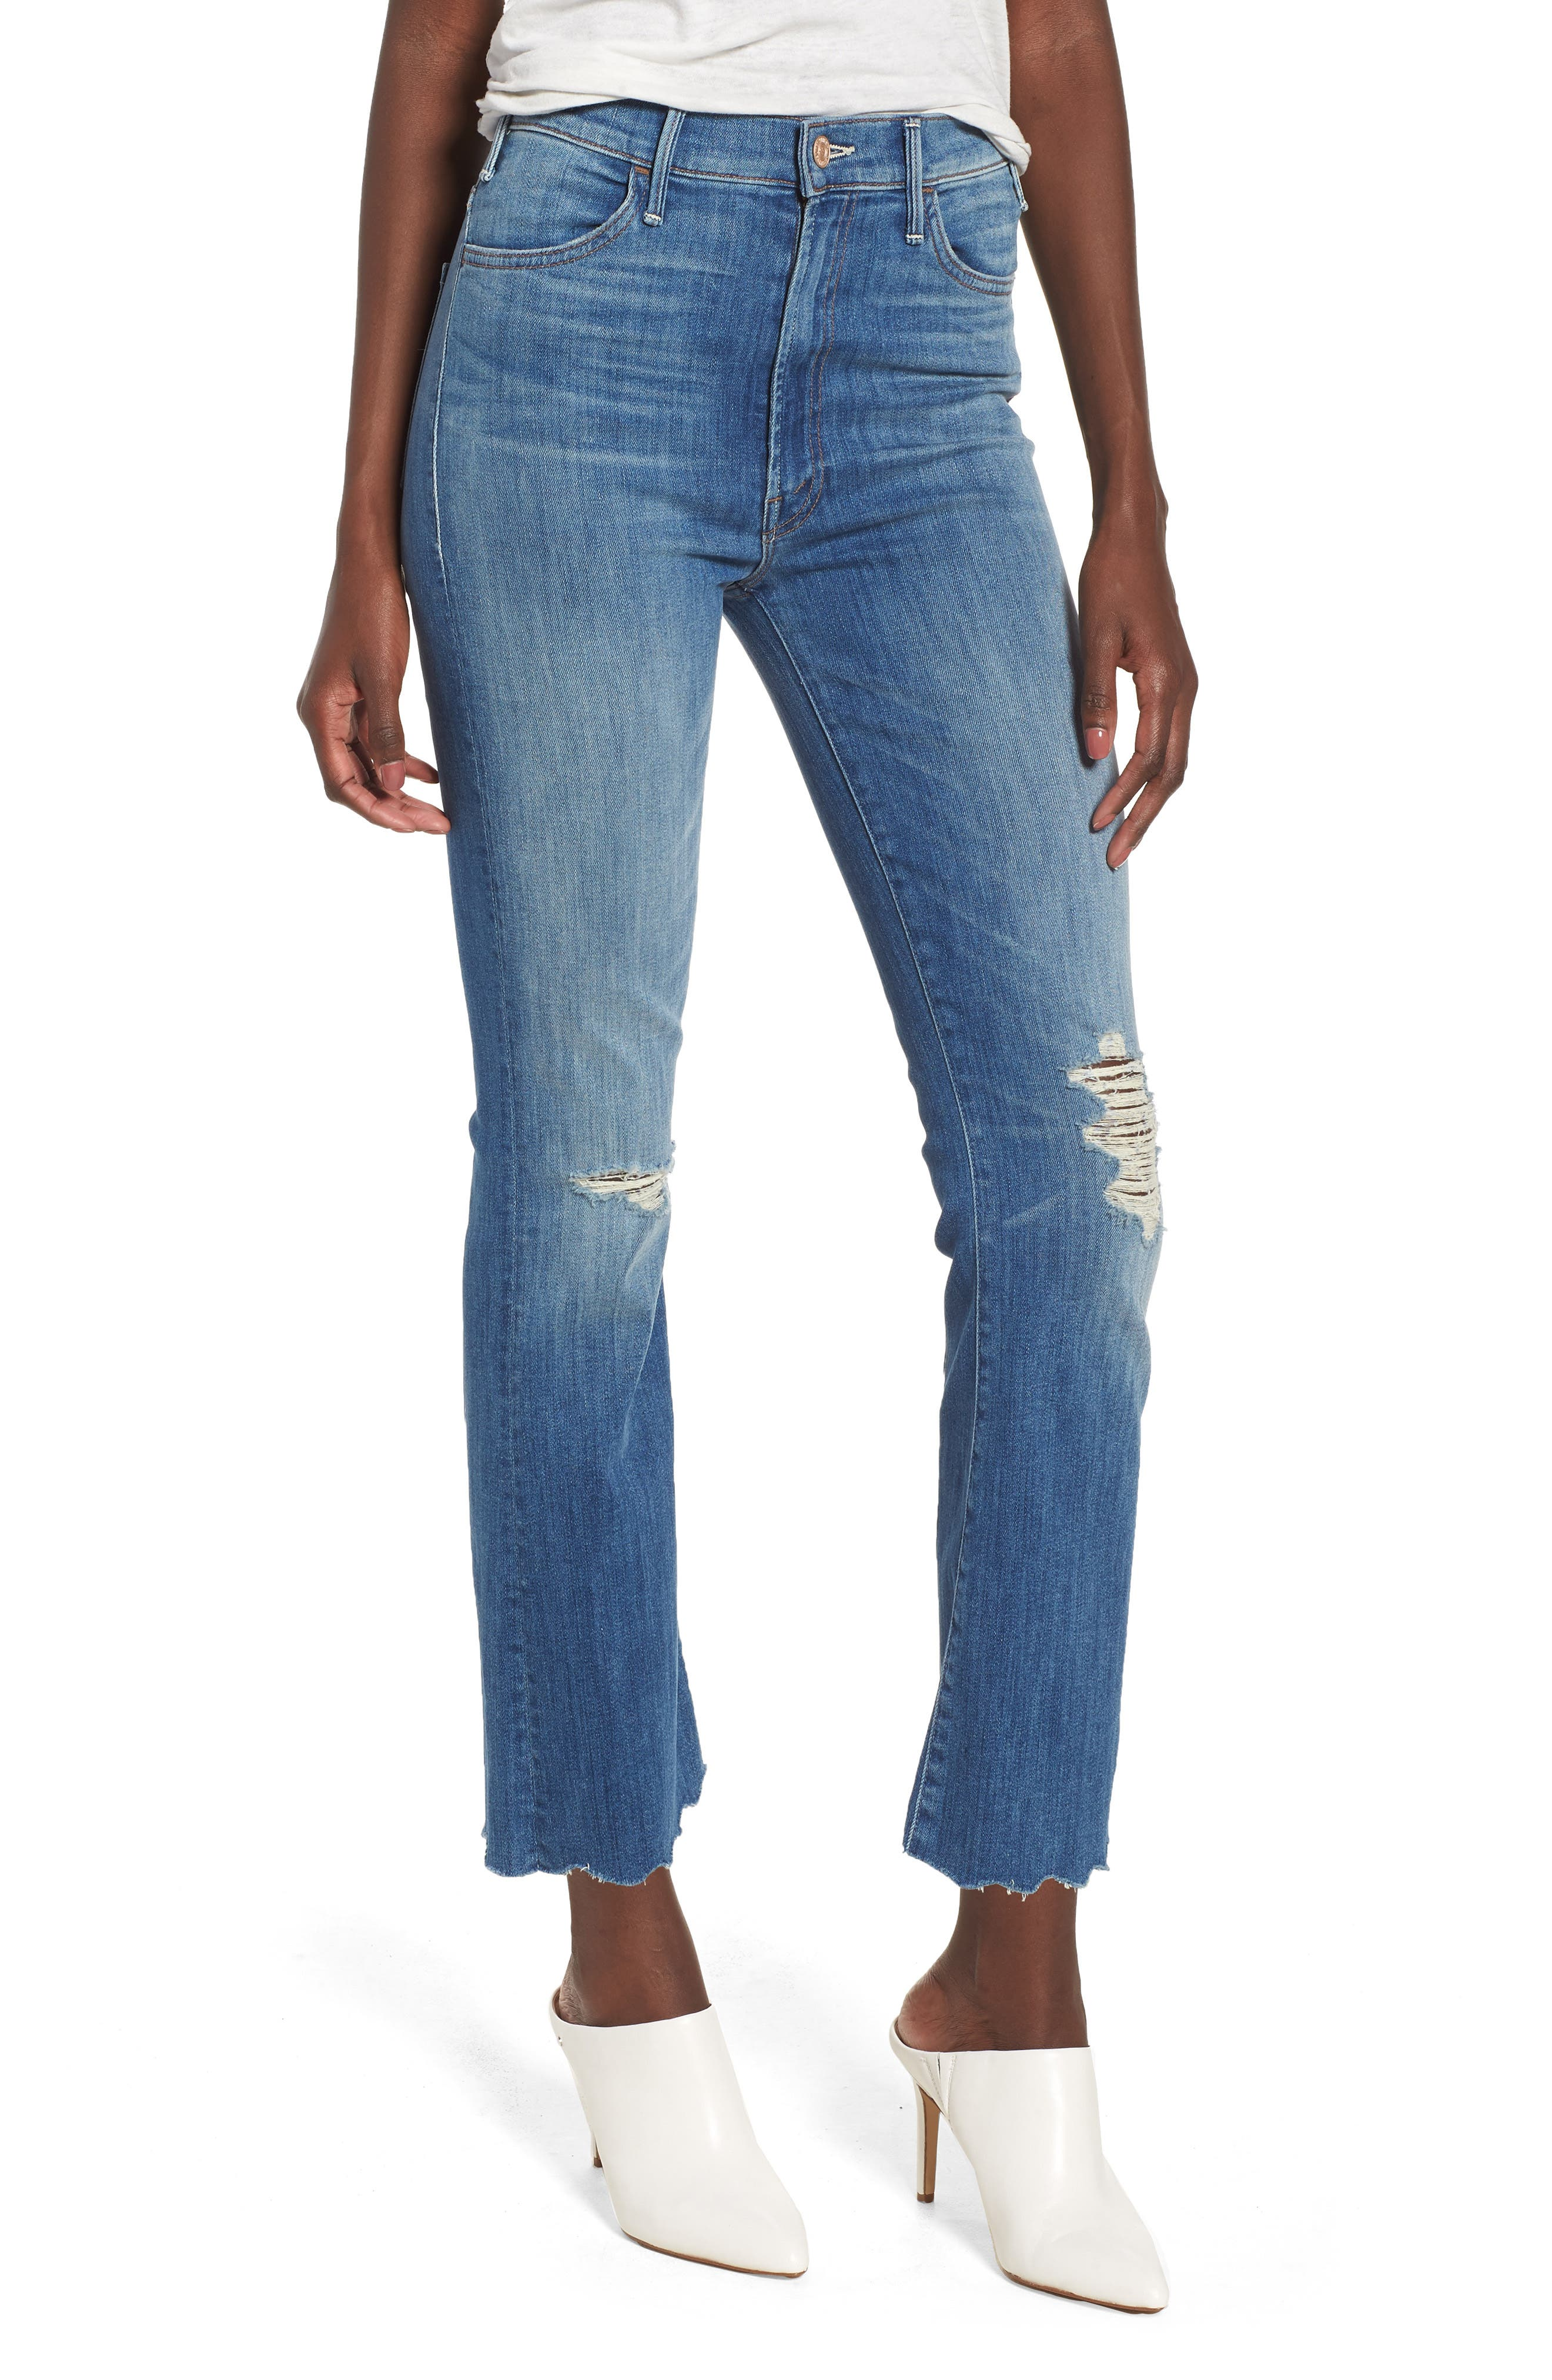 The Hustler High Waist Chew Hem Ankle Jeans,                         Main,                         color, Mums The Word